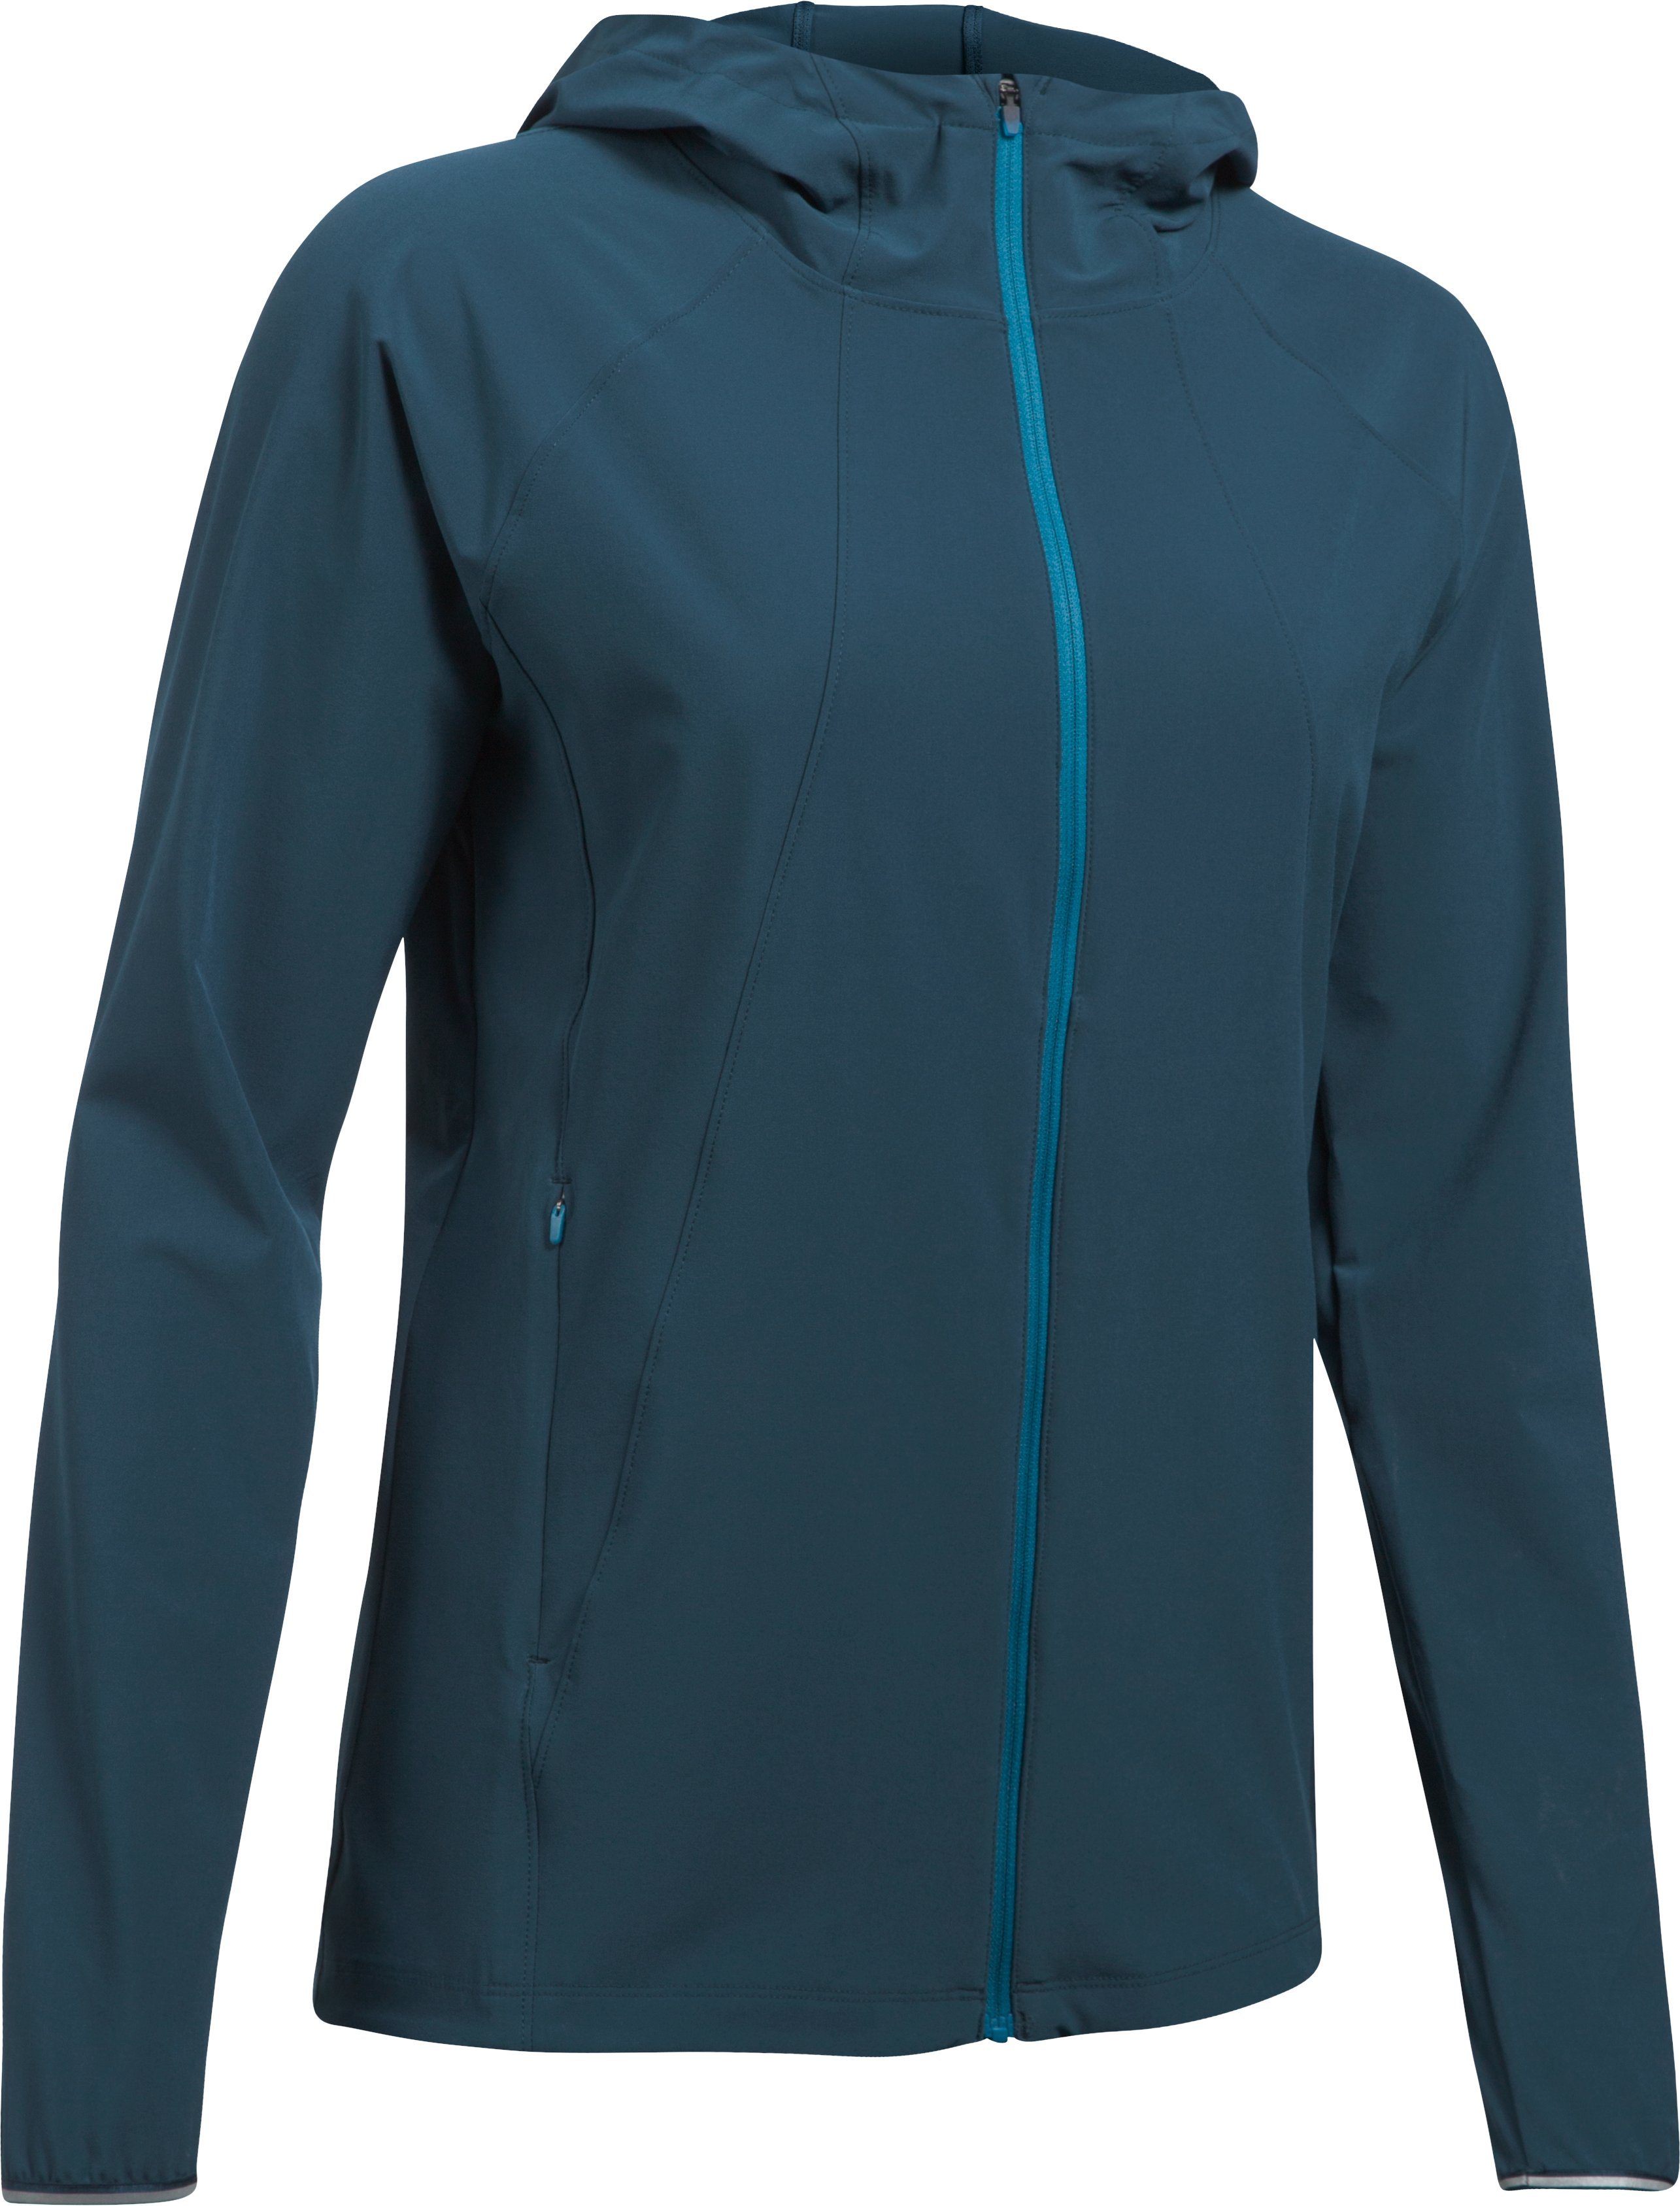 Women's UA Out Run The Storm Jacket, TRUE INK, undefined